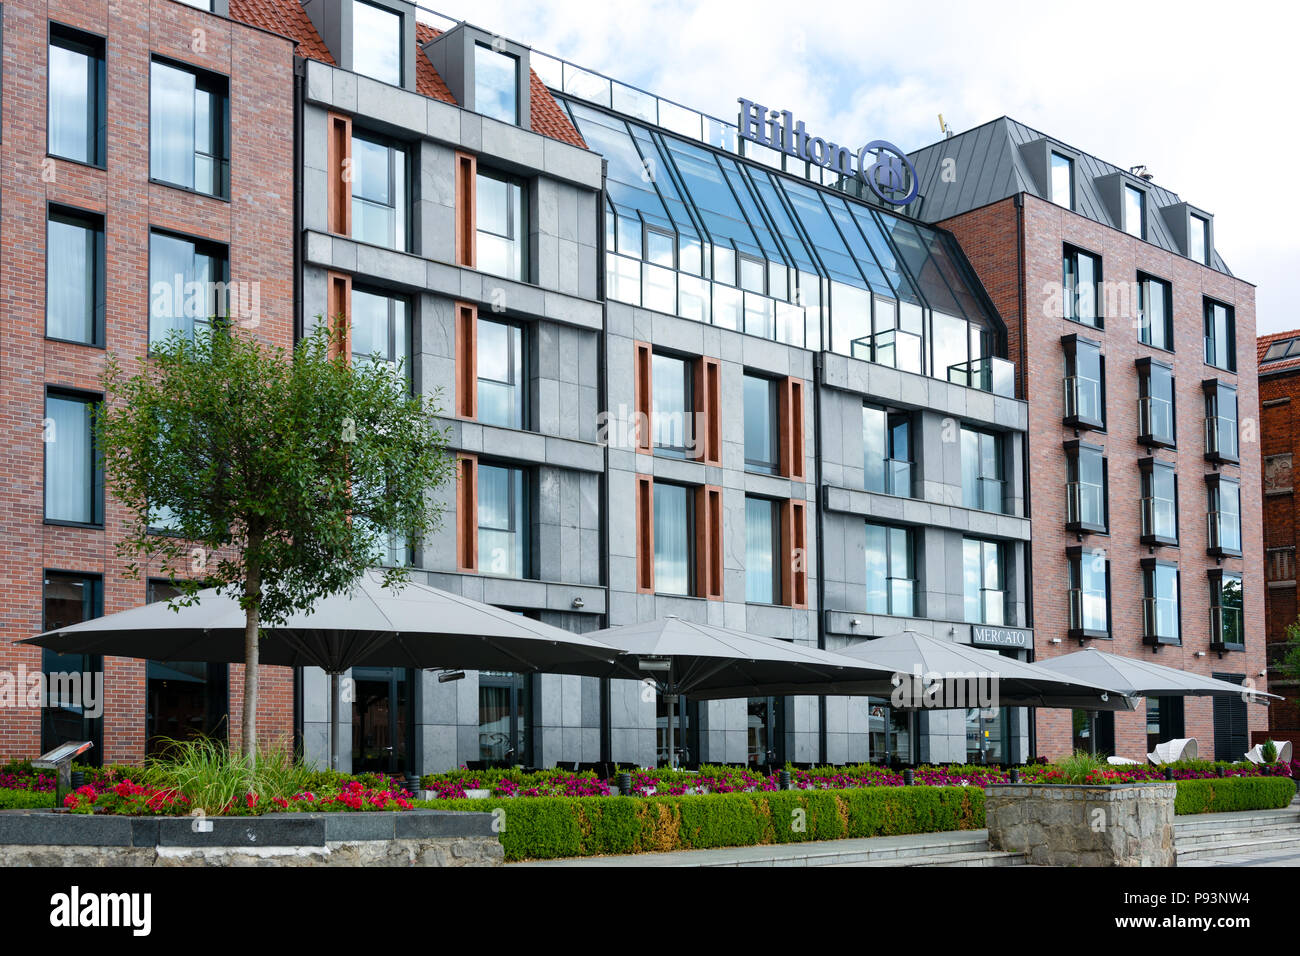 Gdansk Poland June 26 2018 Exterior View Of Luxury 5 Stars